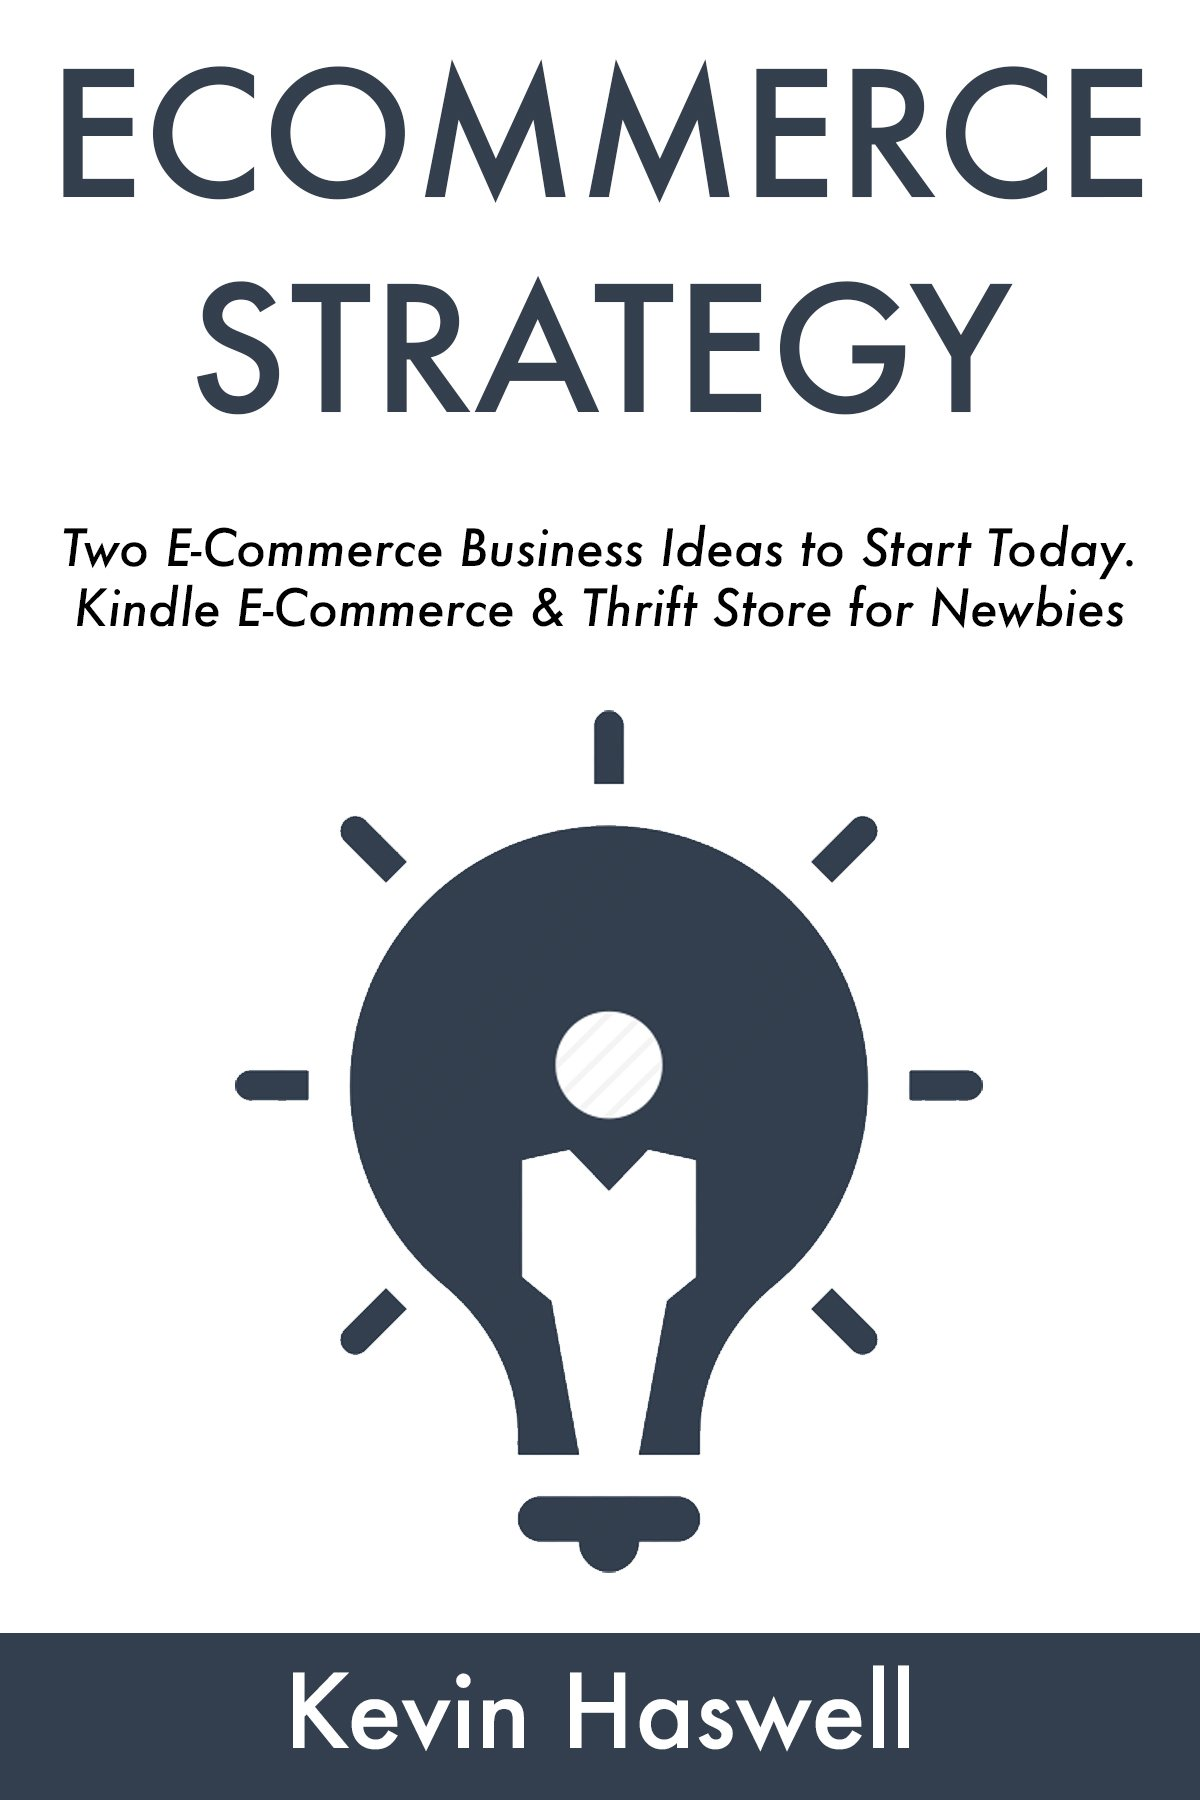 ECOMMERCE STRATEGY: Two E-Commerce Business Ideas to Start Today. Kindle E-Commerce & Thrift Store for Newbies